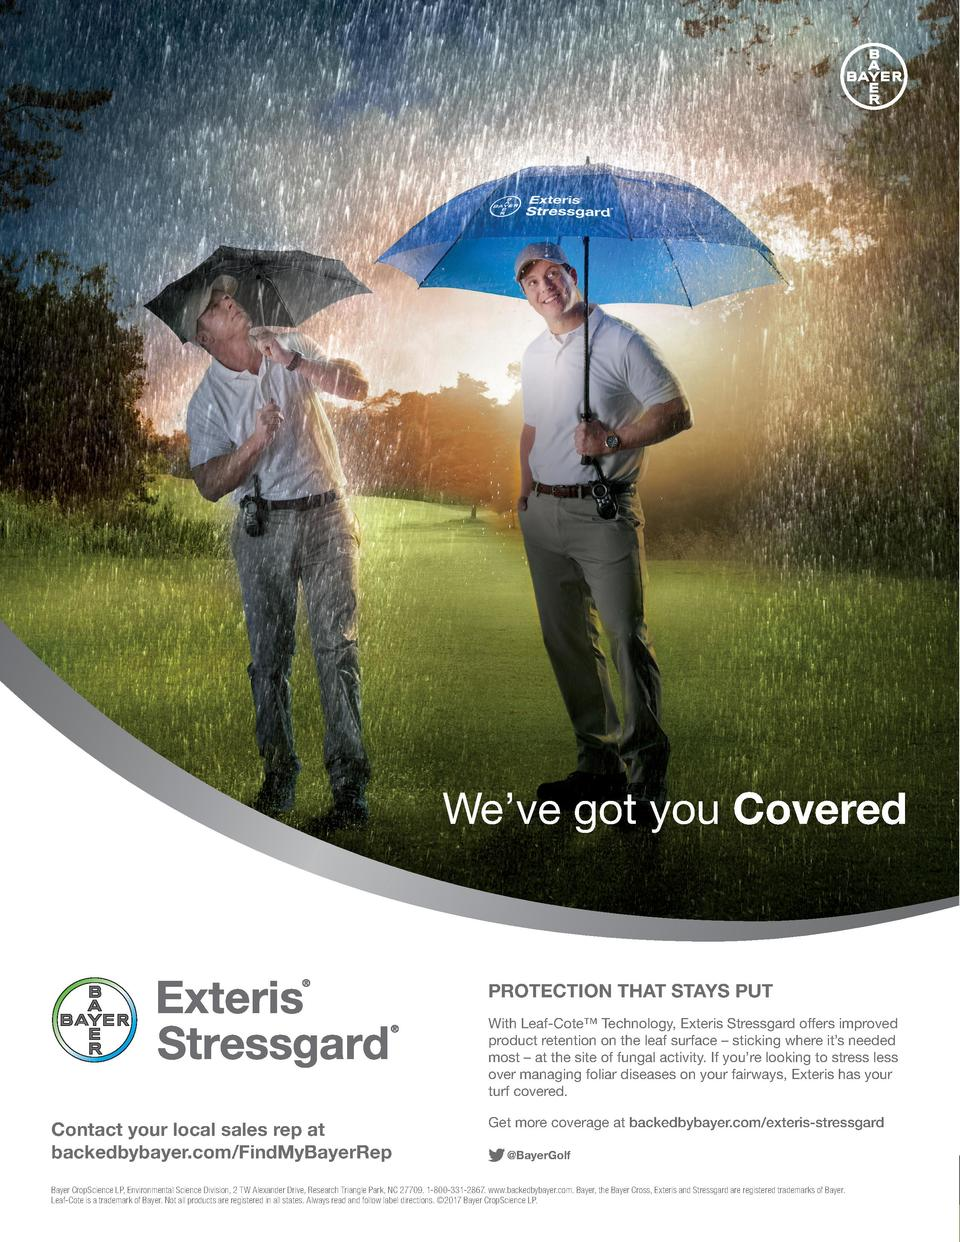 We   ve got you Covered  PROTECTION THAT STAYS PUT With Leaf-Cote    Technology, Exteris Stressgard offers improved produc...